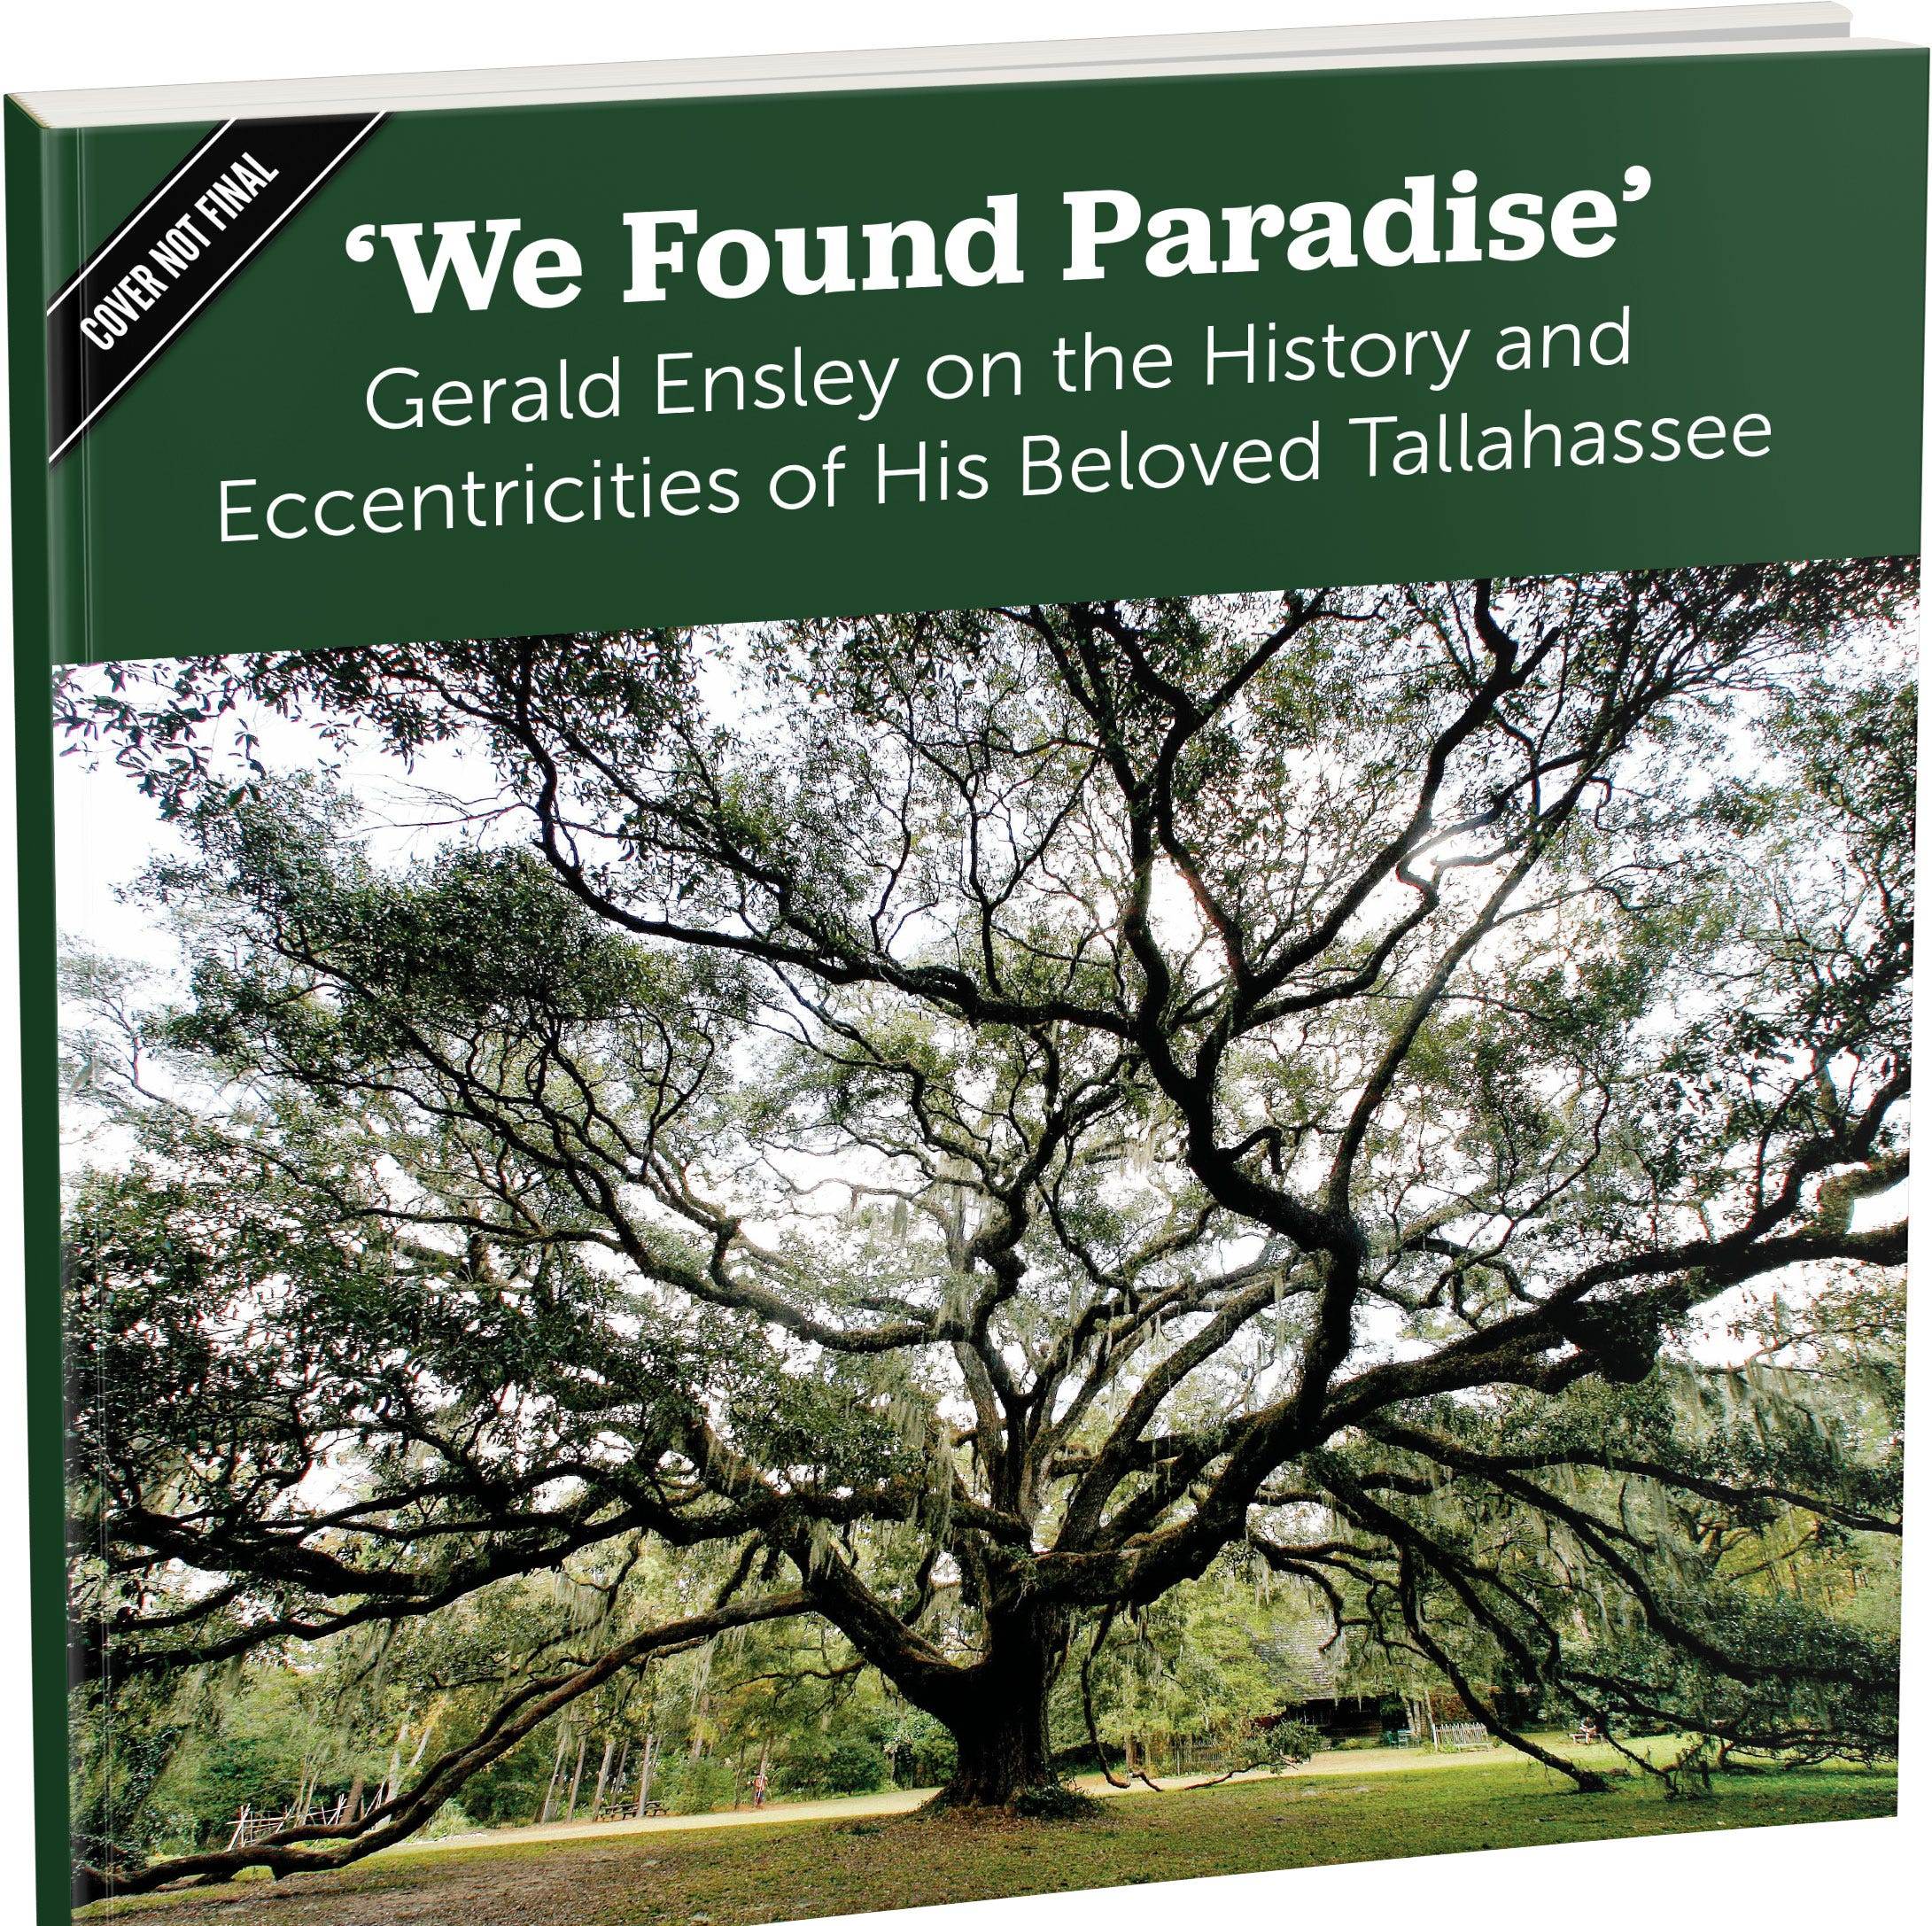 We're revisiting Gerald Ensley's 'paradise'